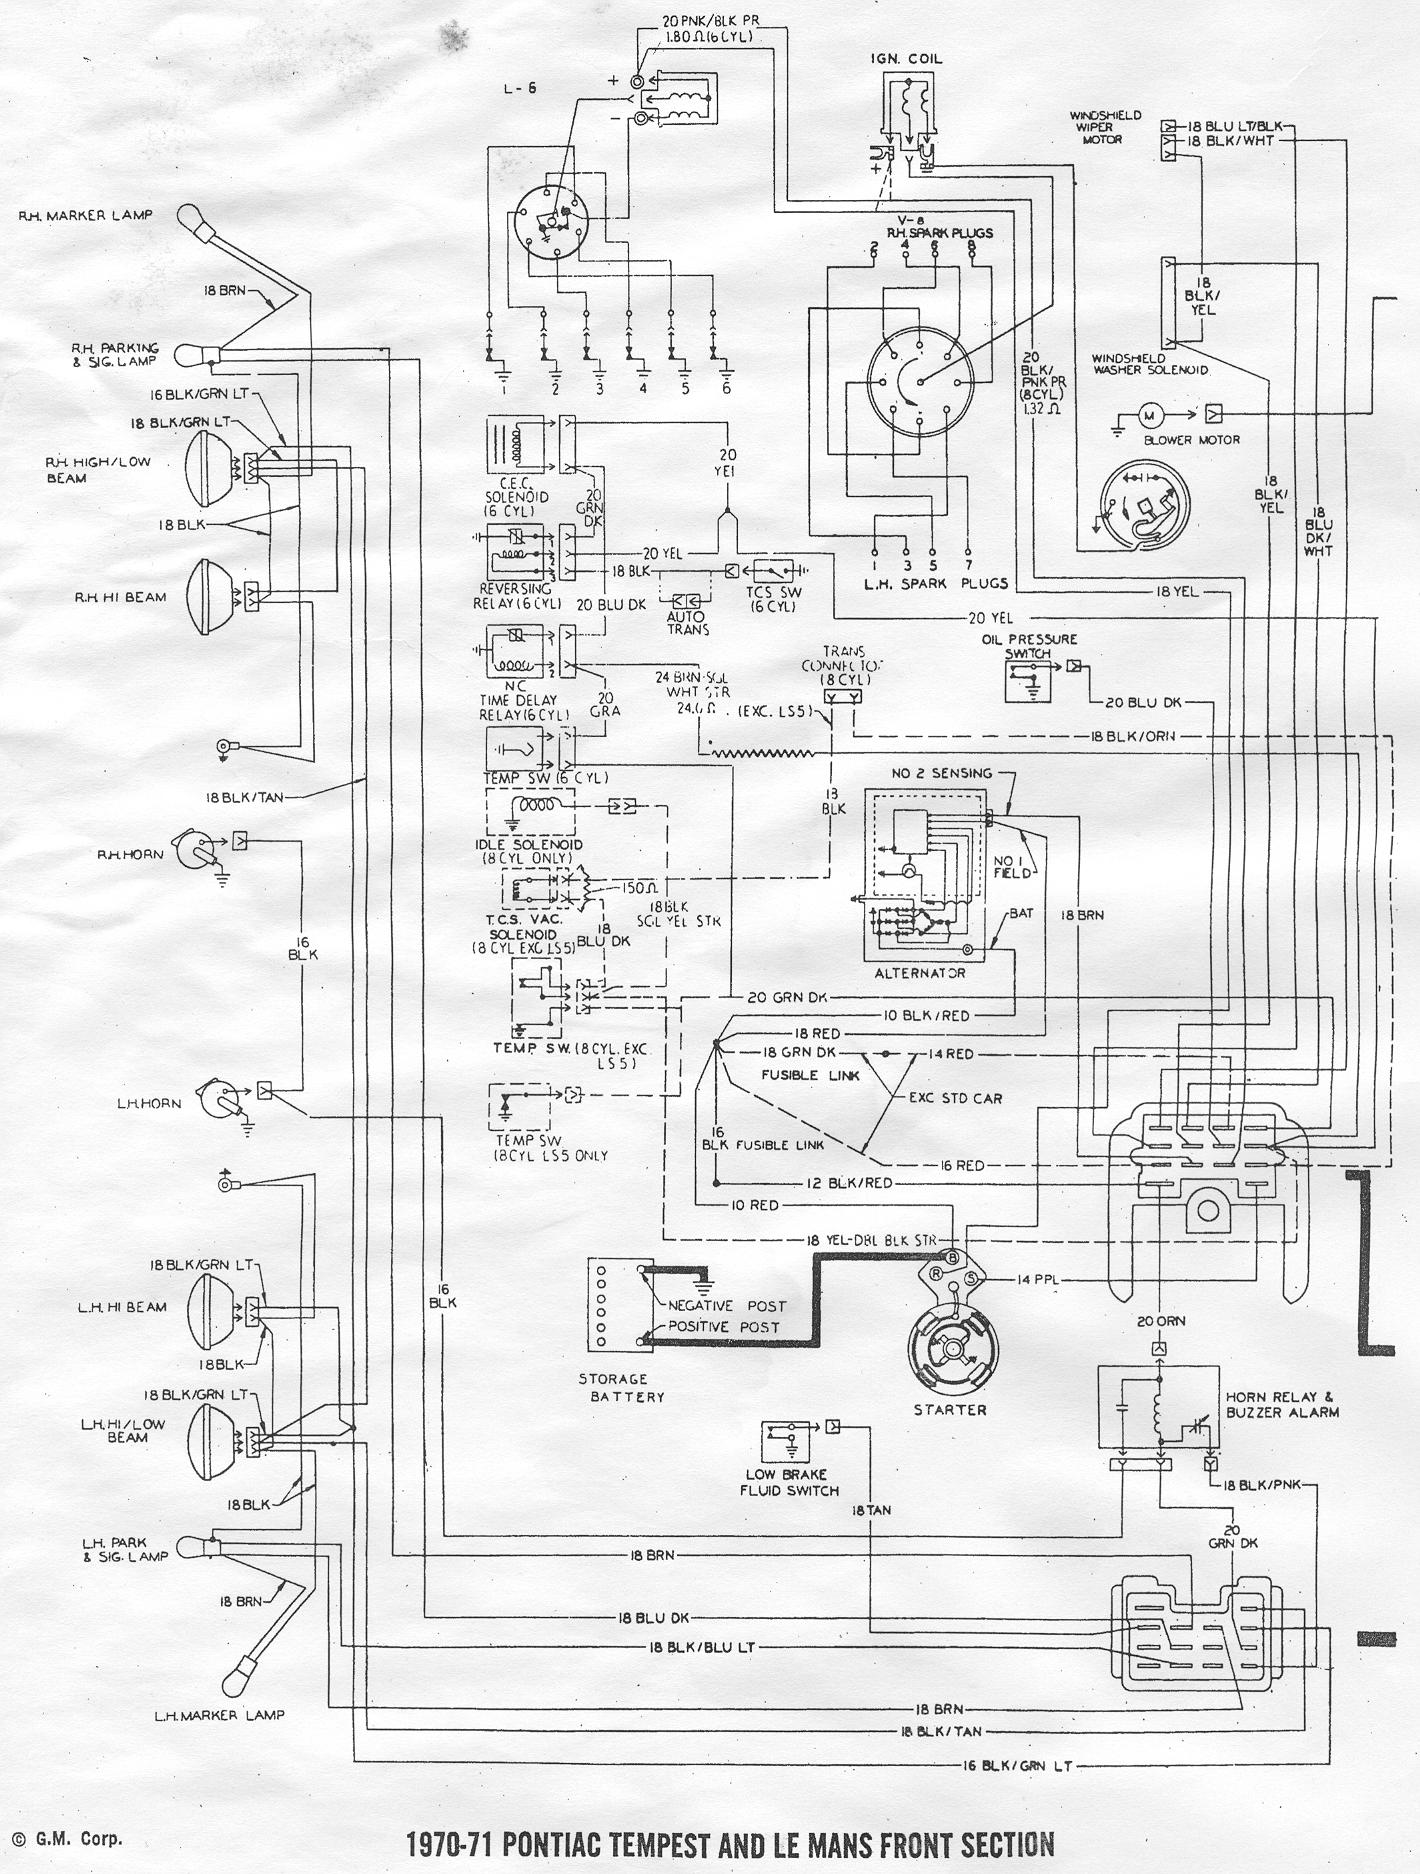 DIAGRAM] 1967 Pontiac Tachometer Wiring Diagram FULL Version HD Quality Wiring  Diagram - LOST-DIAGRAM.EXPERTSUNIVERSITY.ITDiagram Database - Expertsuniversity.it